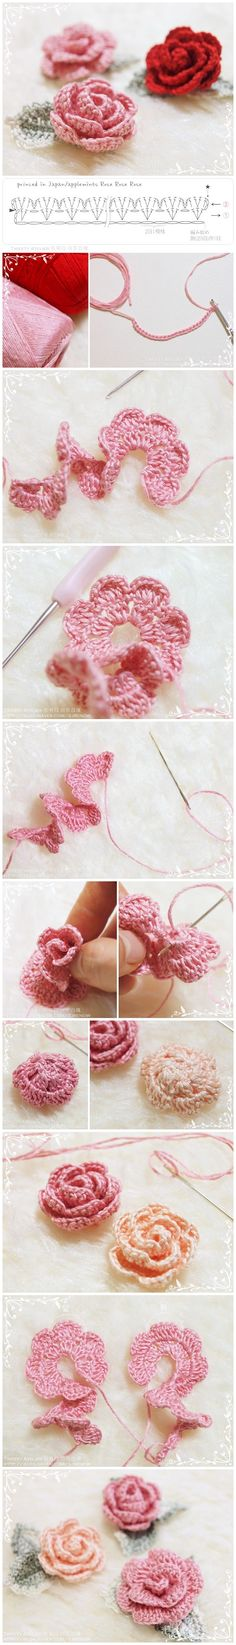 How-to-make-hand-crochet-rose